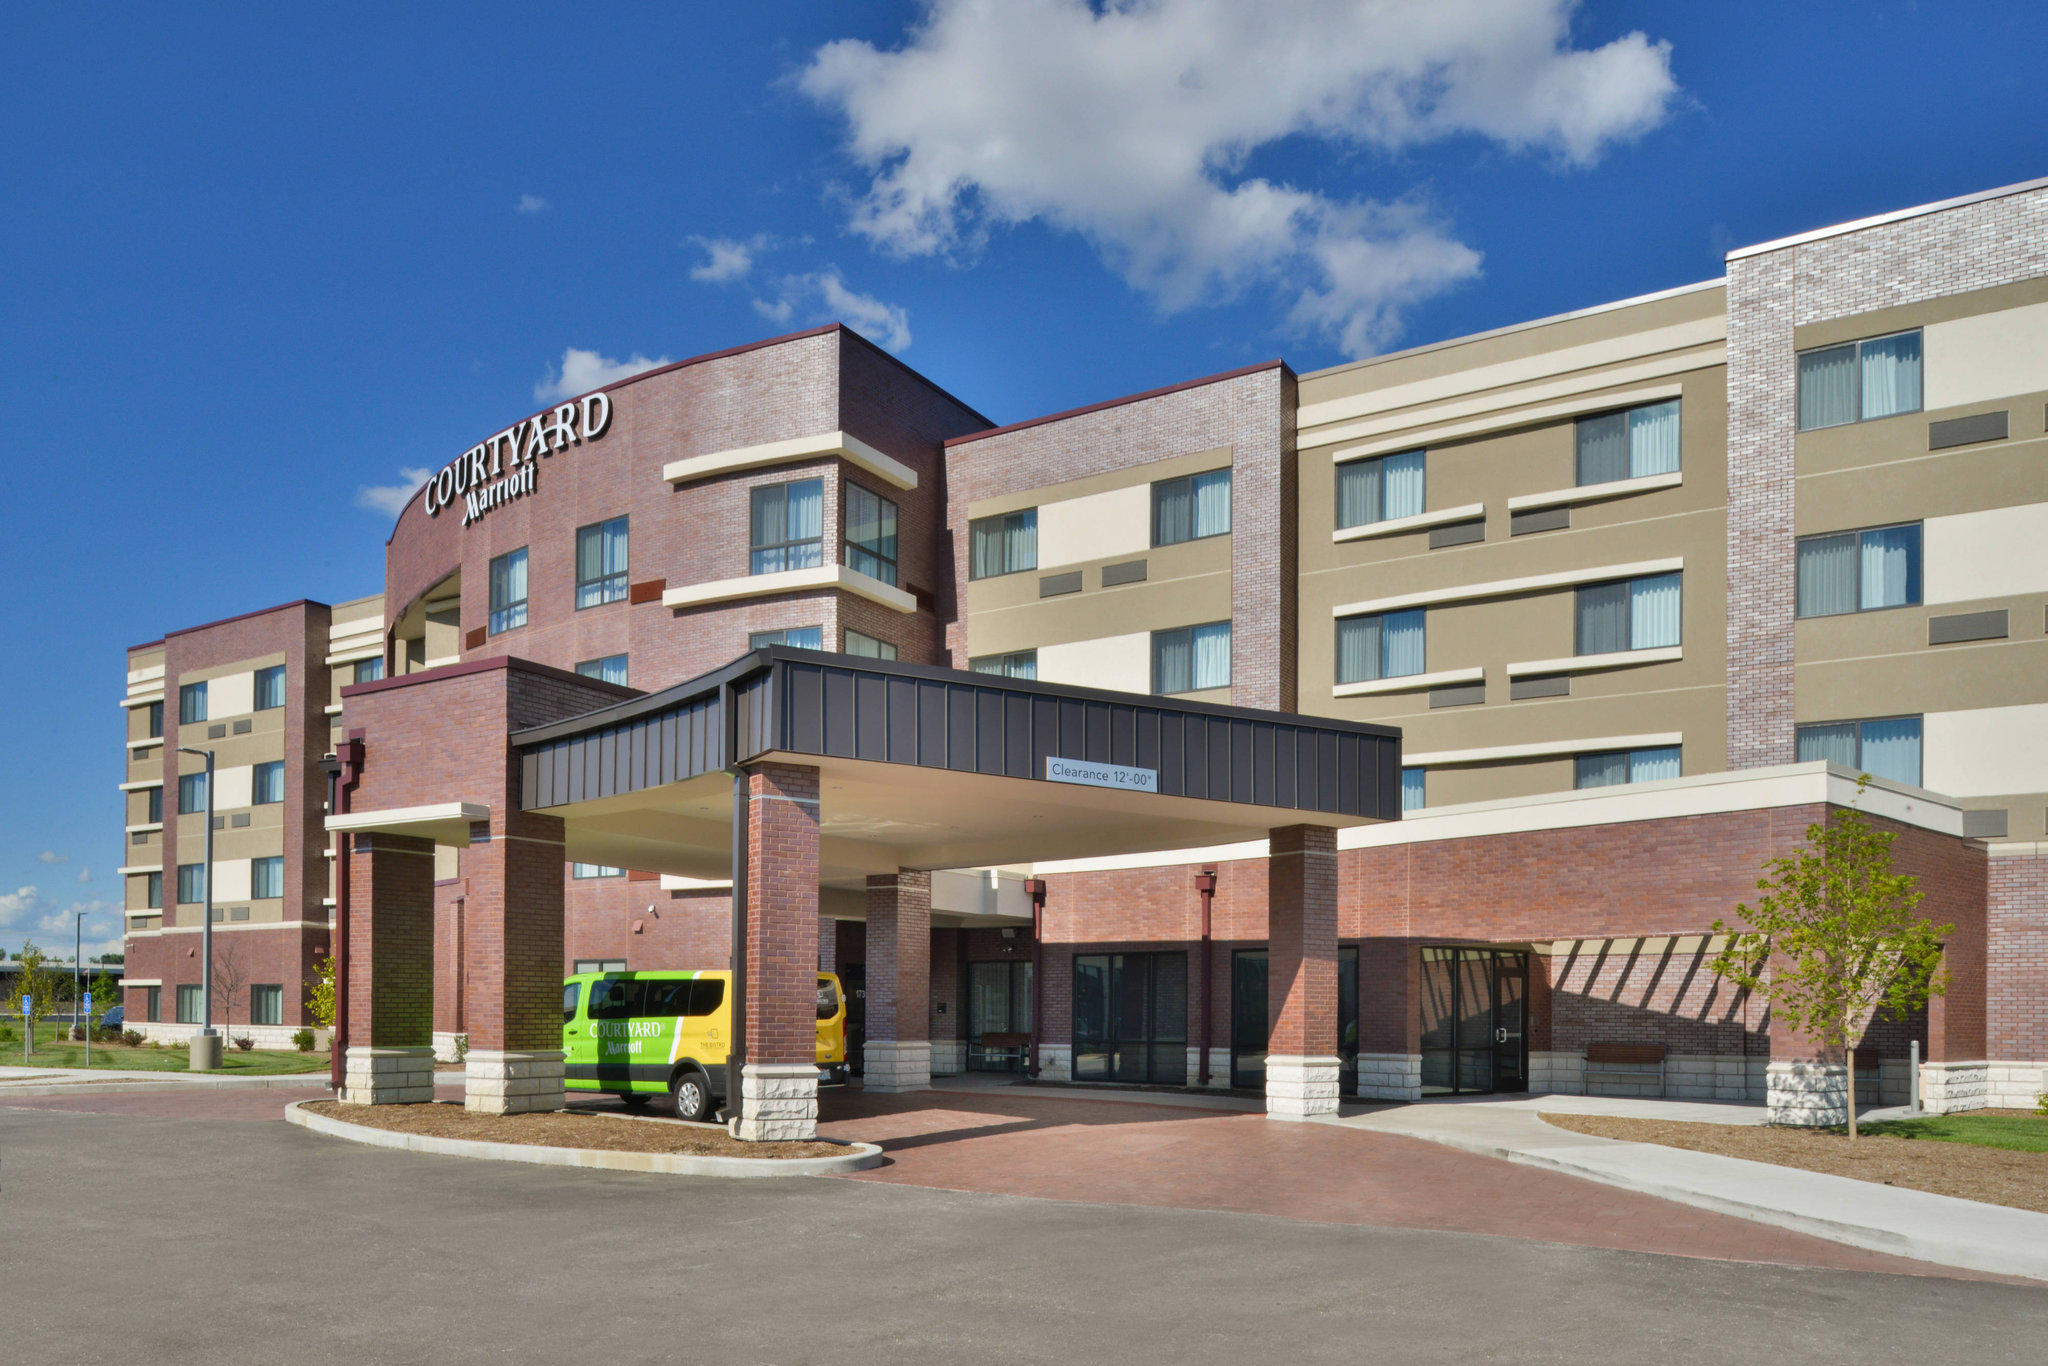 Courtyard by Marriott St Louis Chesterfield